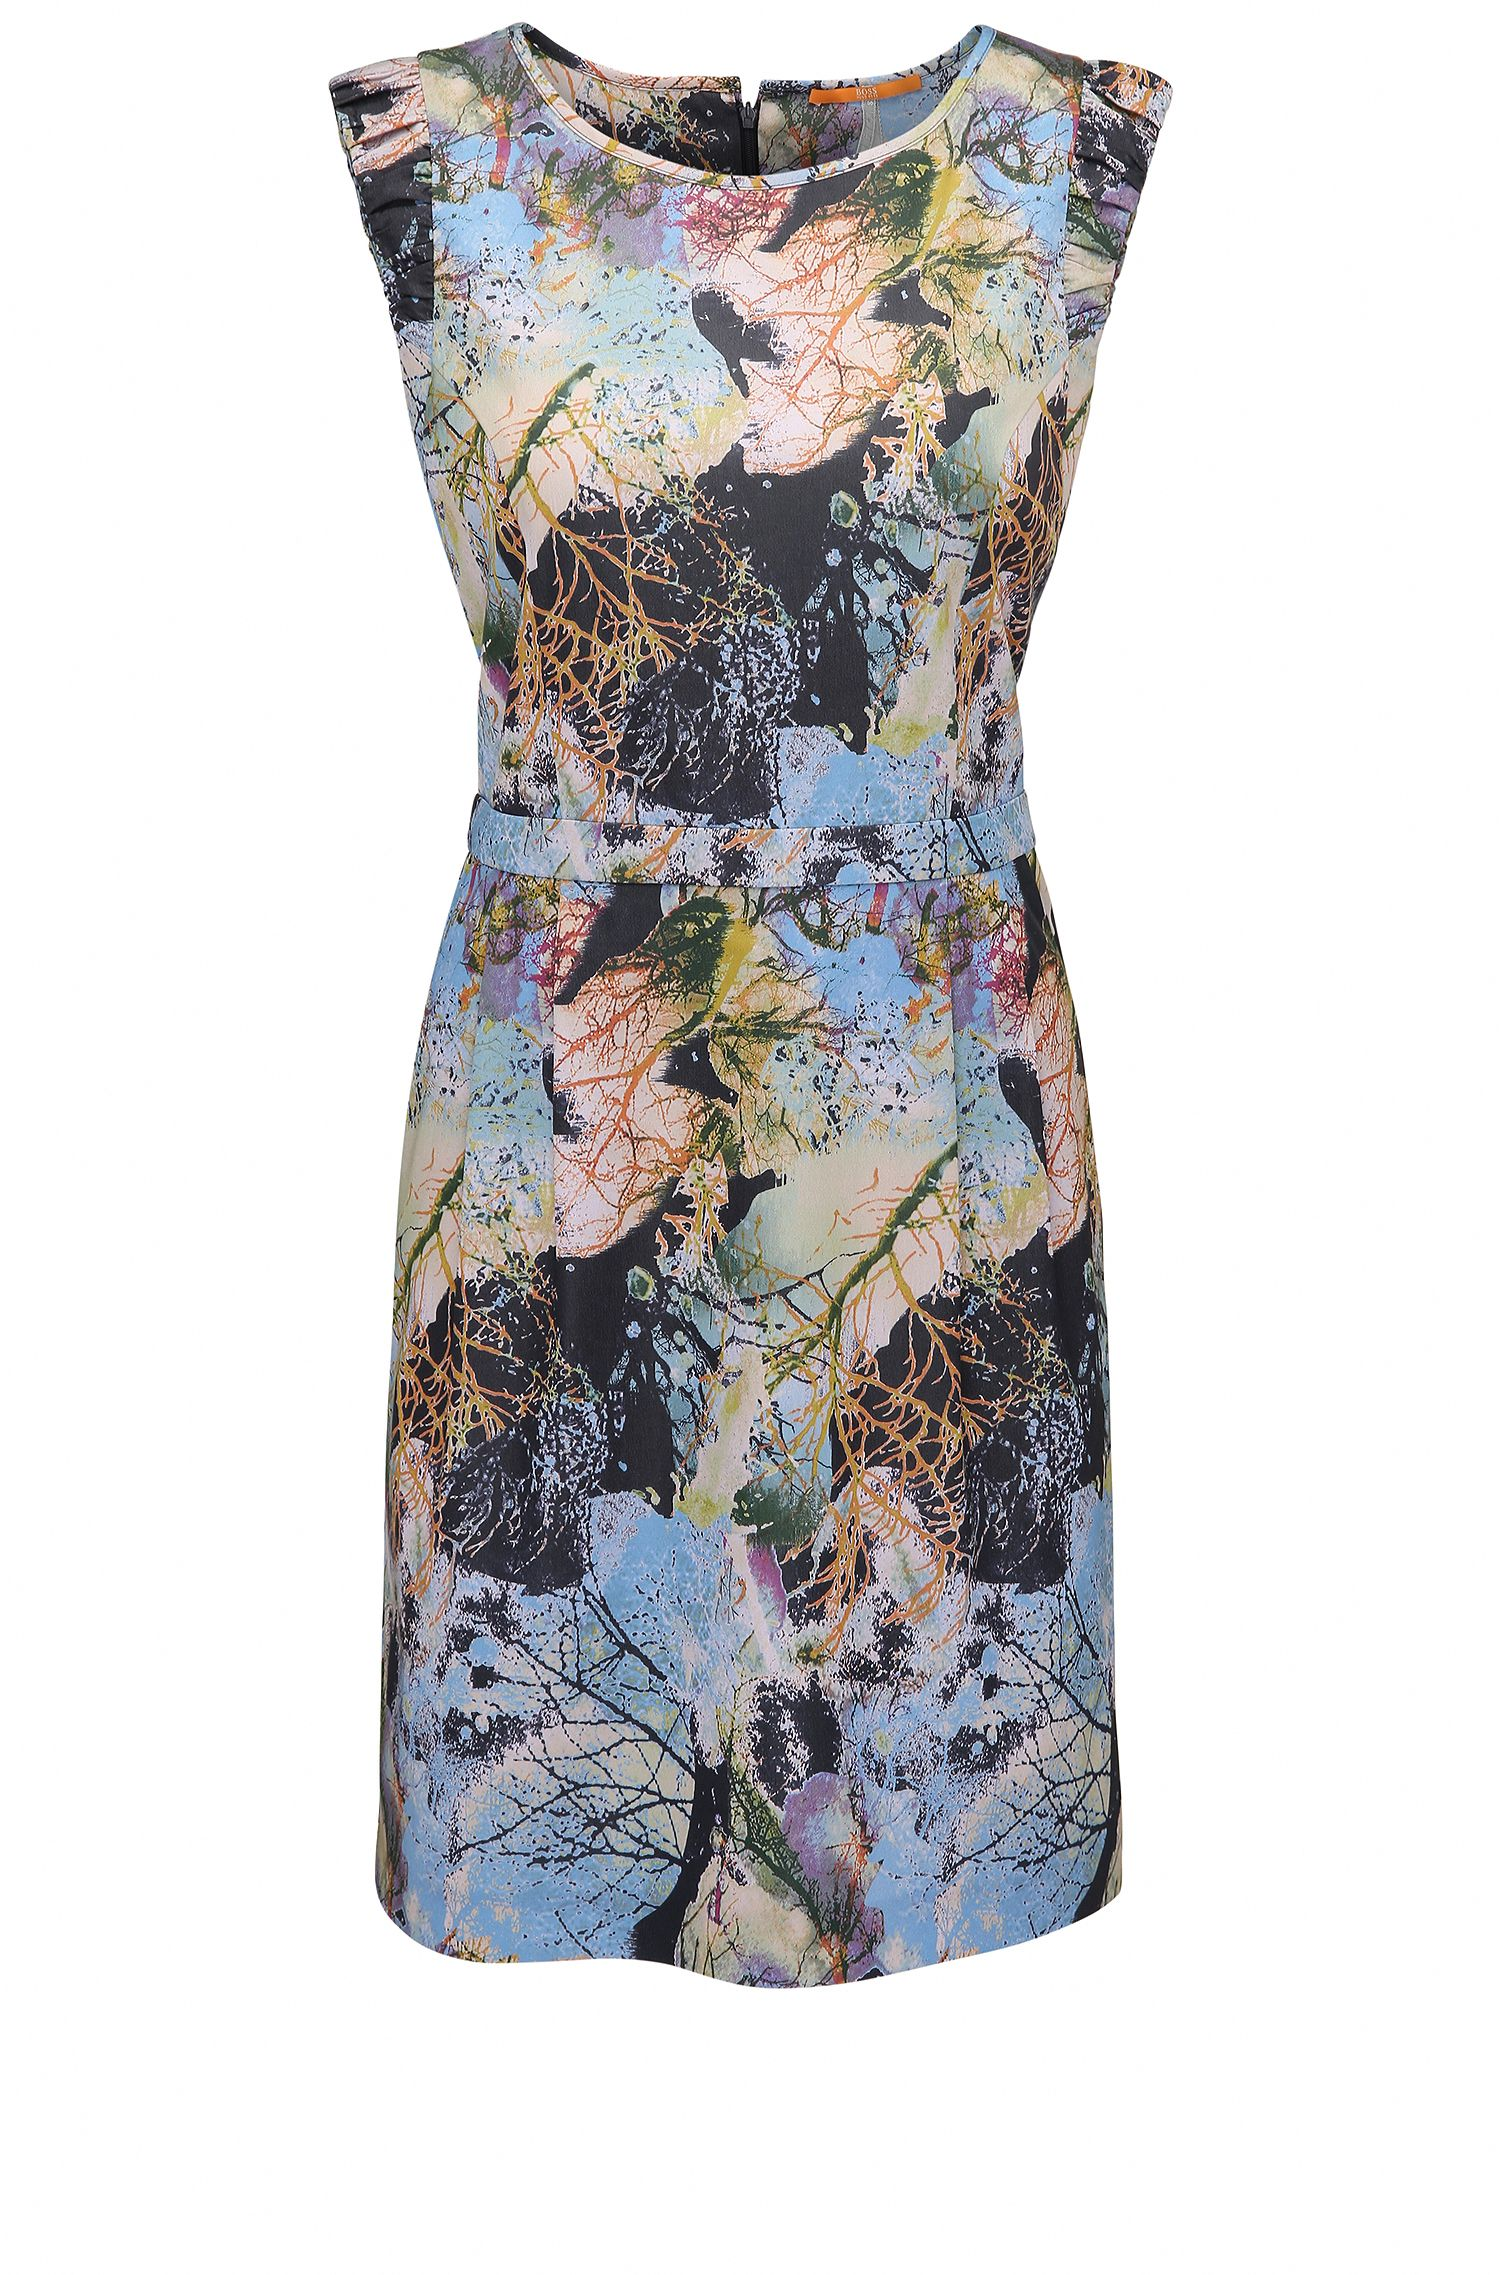 Waisted dress in printed fabric